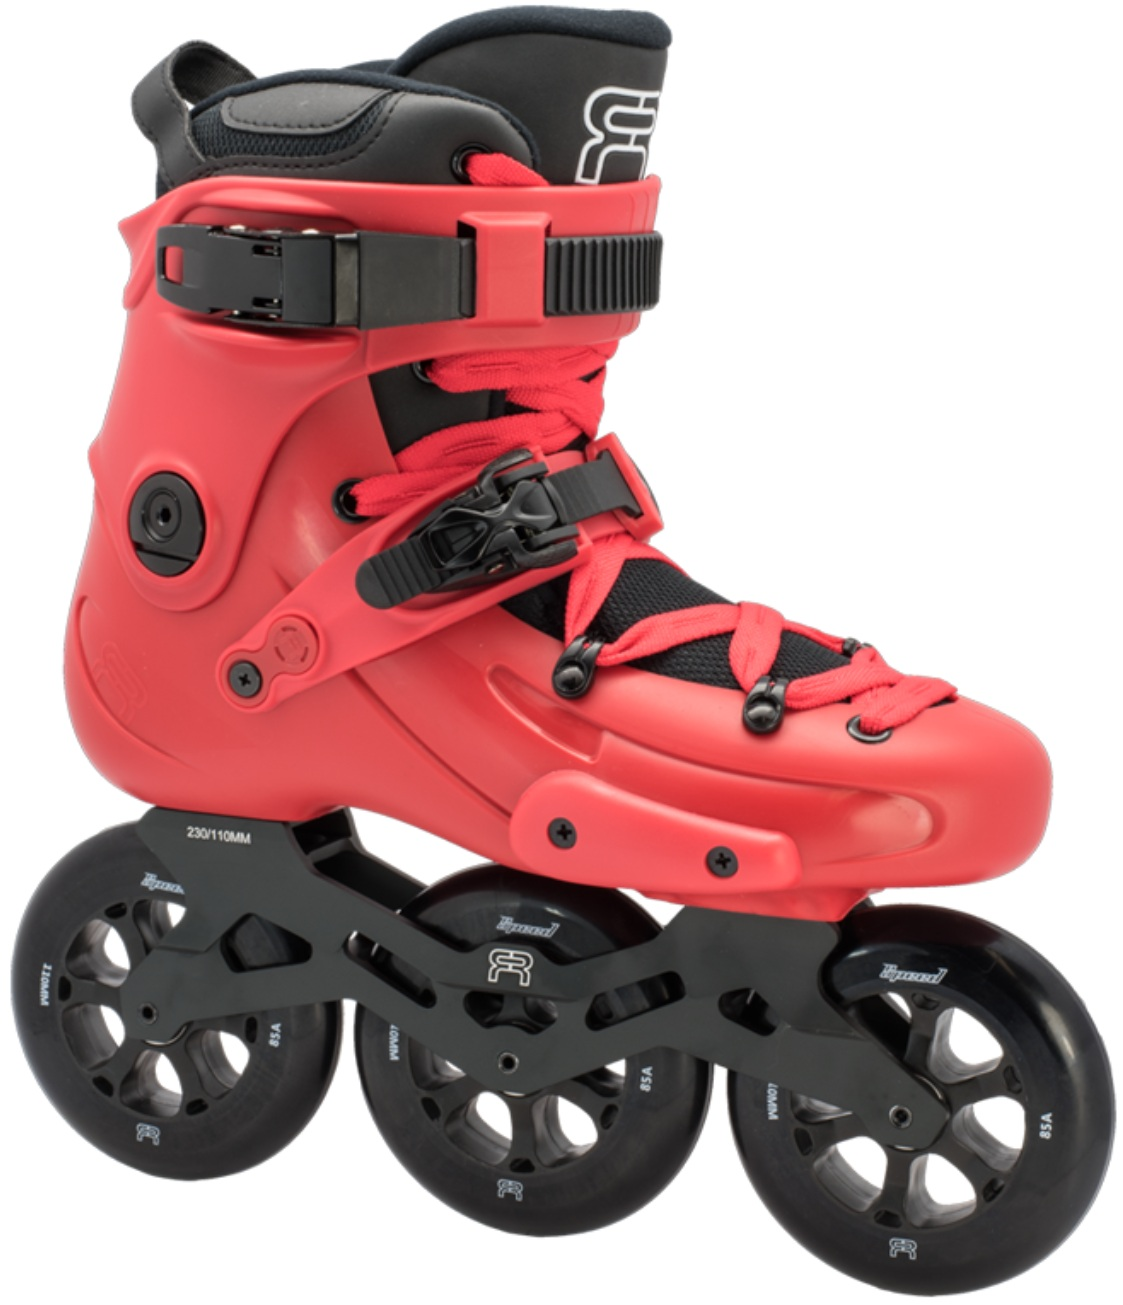 A red inline skate, named FR 1 310, with 3 wheels of 110 mm